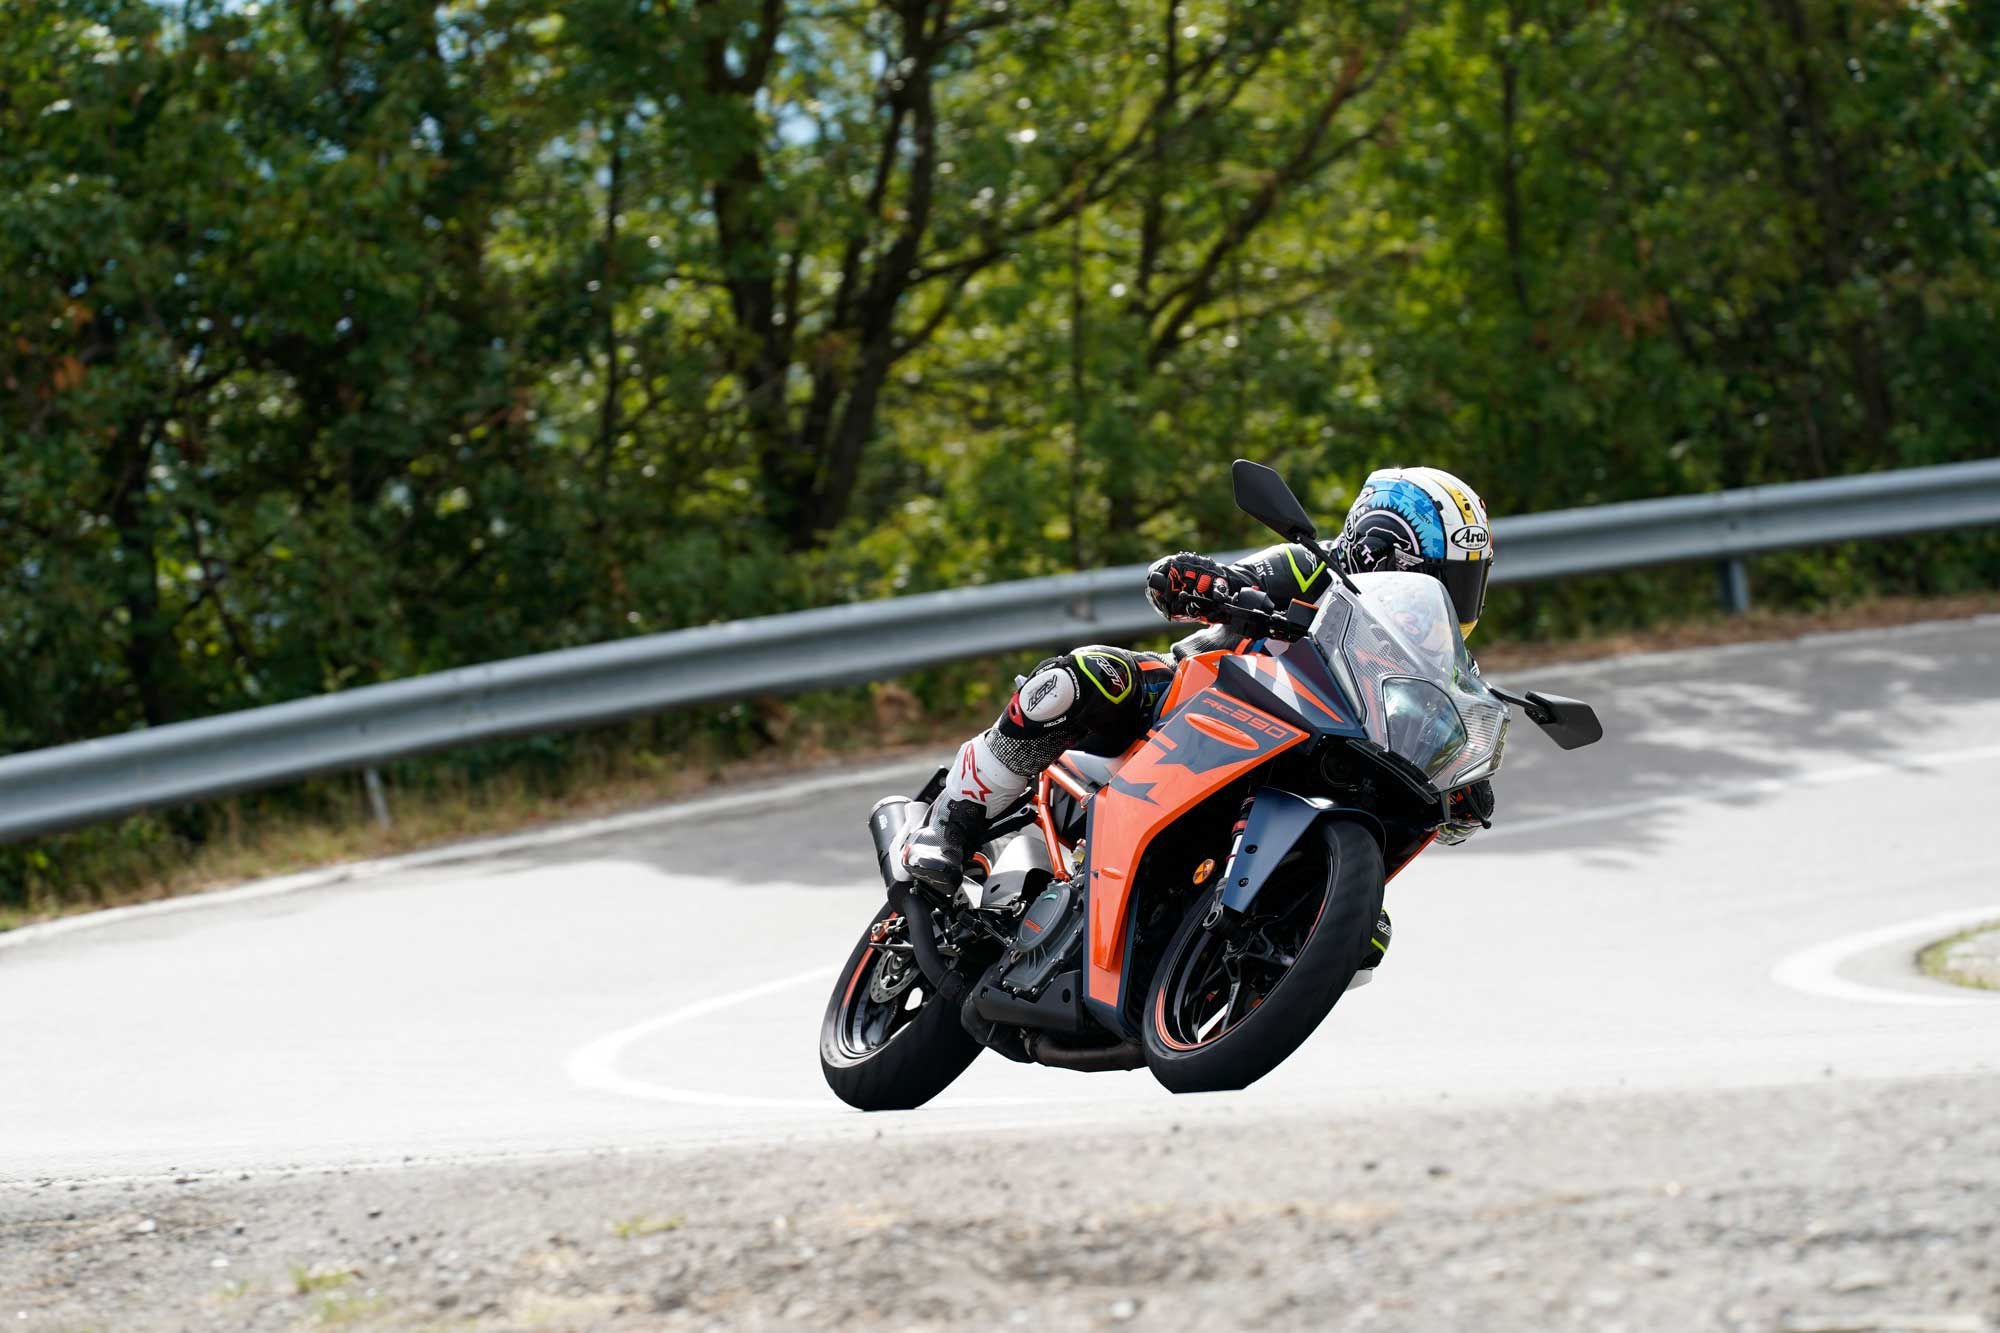 Despite a relatively sporty riding position, the RC 390 is surprisingly comfortable during a full day of riding.